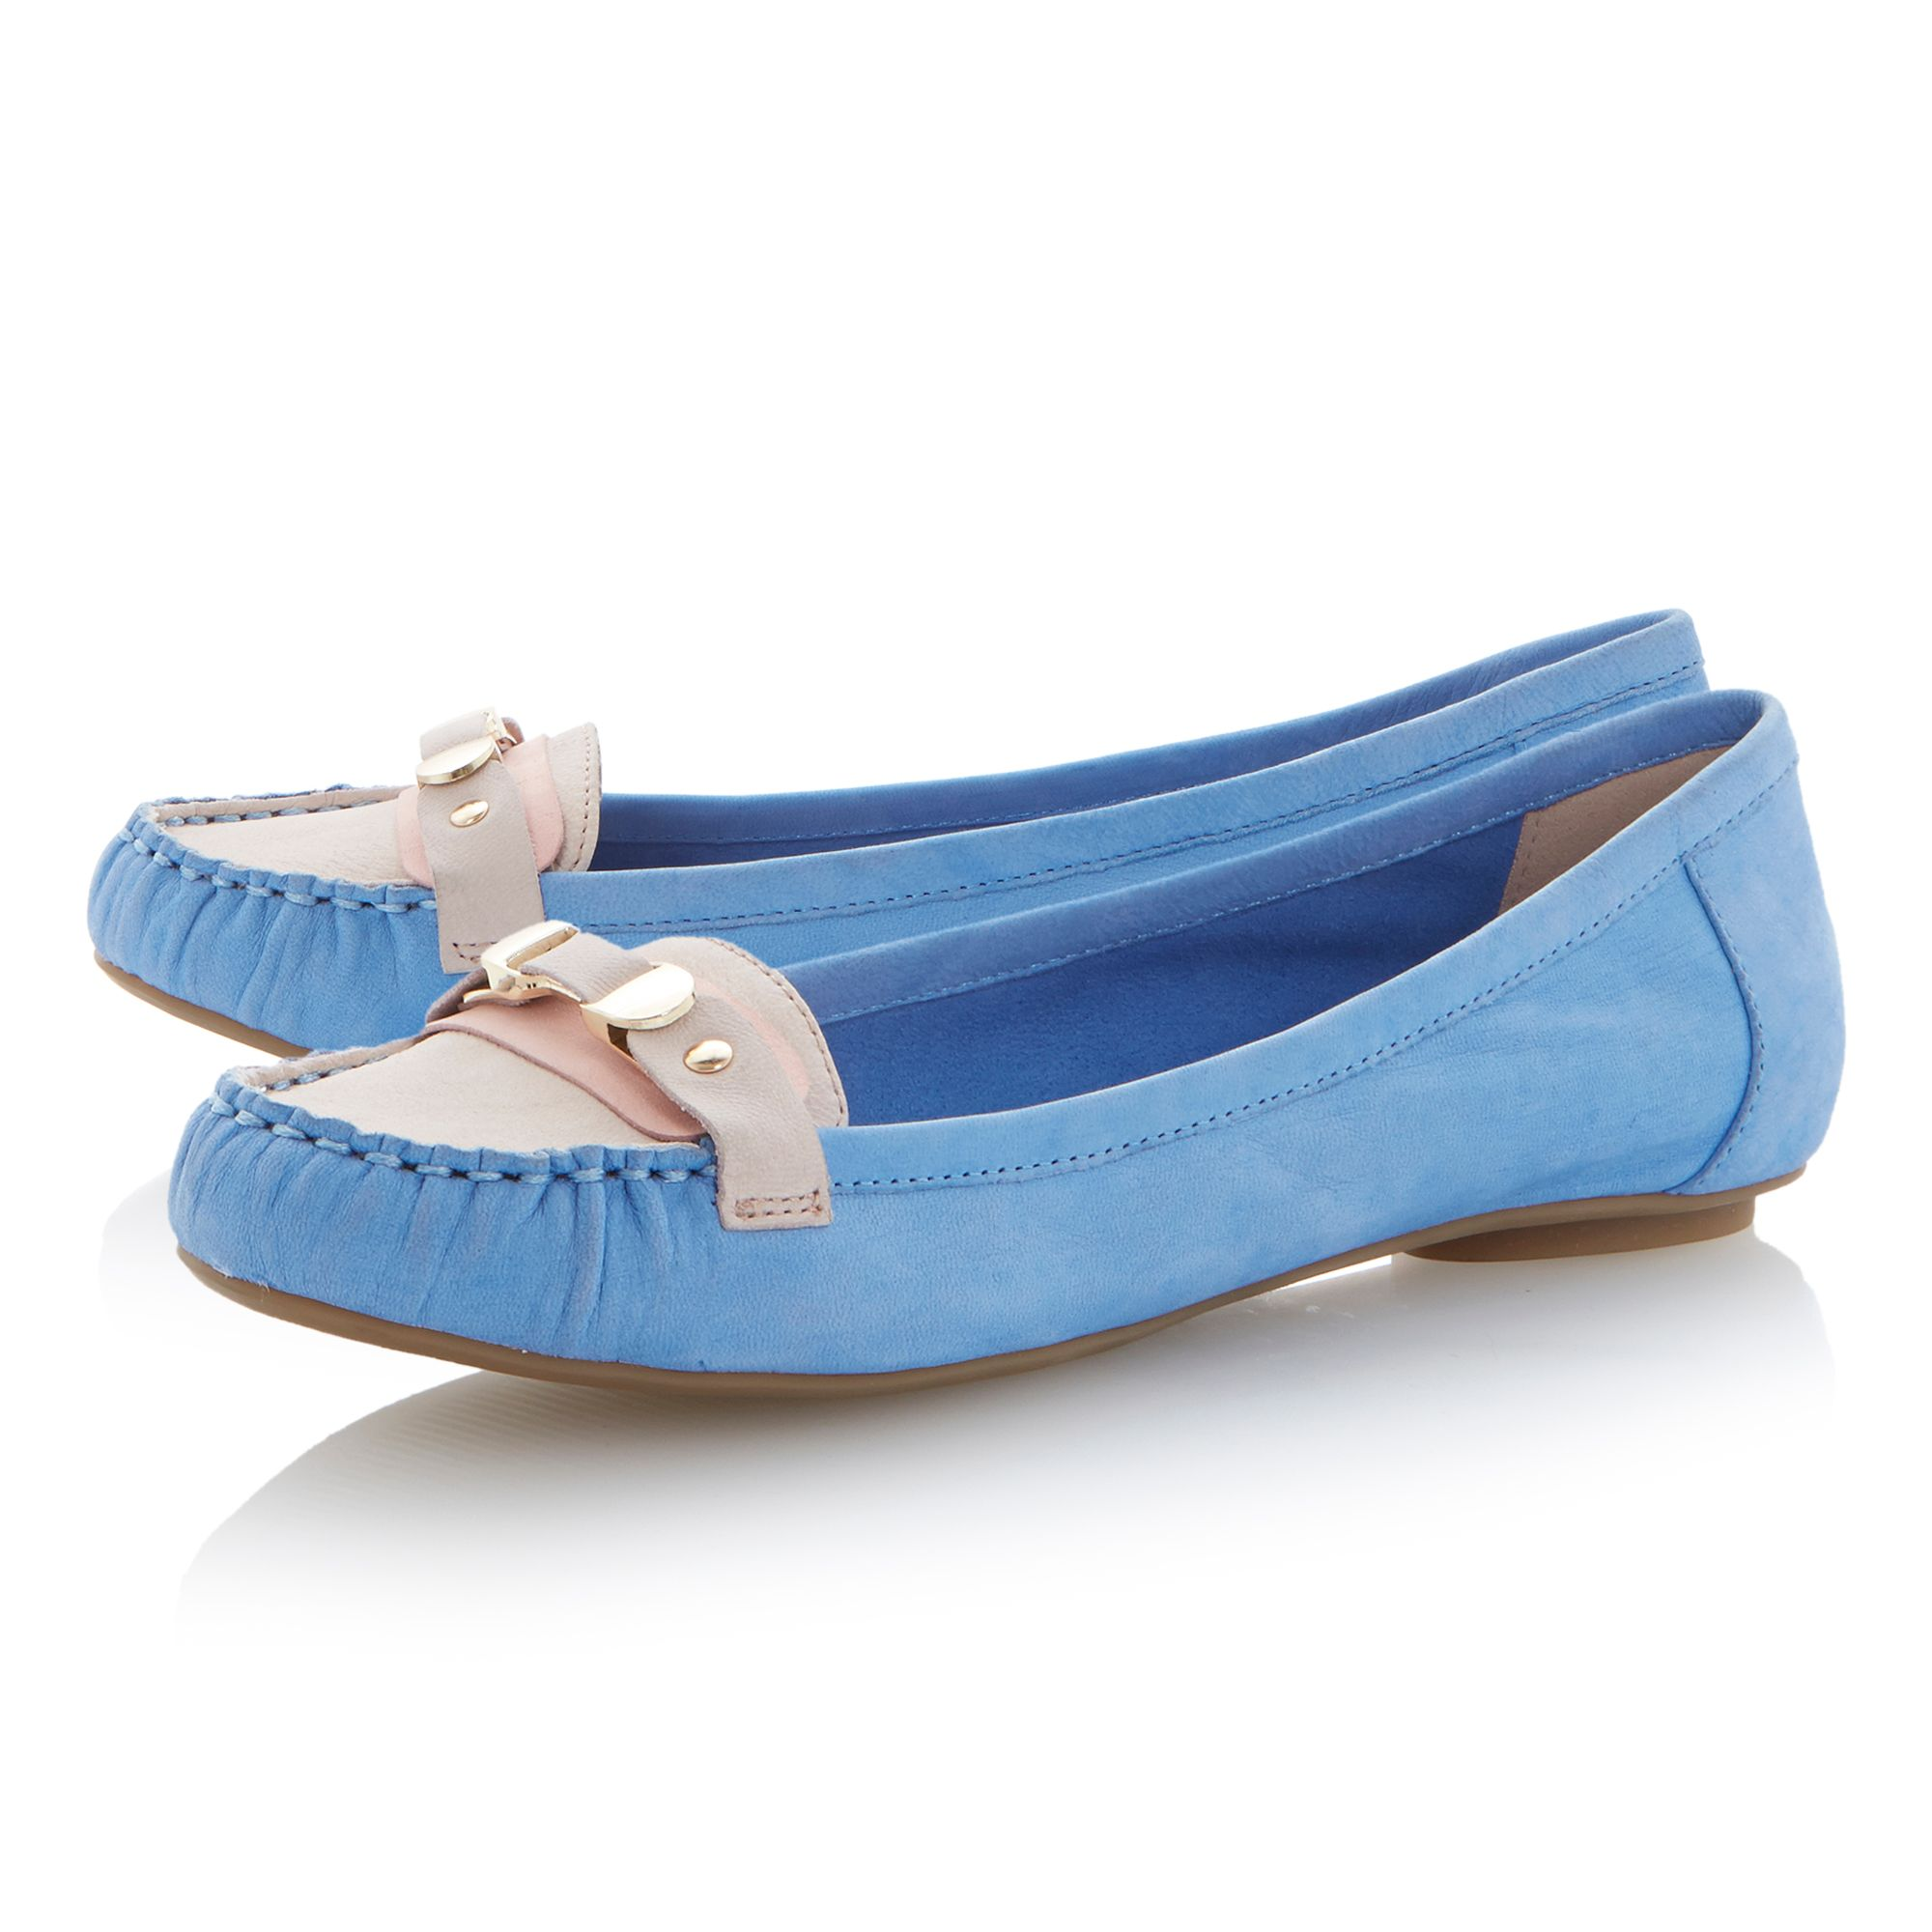 Lancelot leather round toe flat shoes